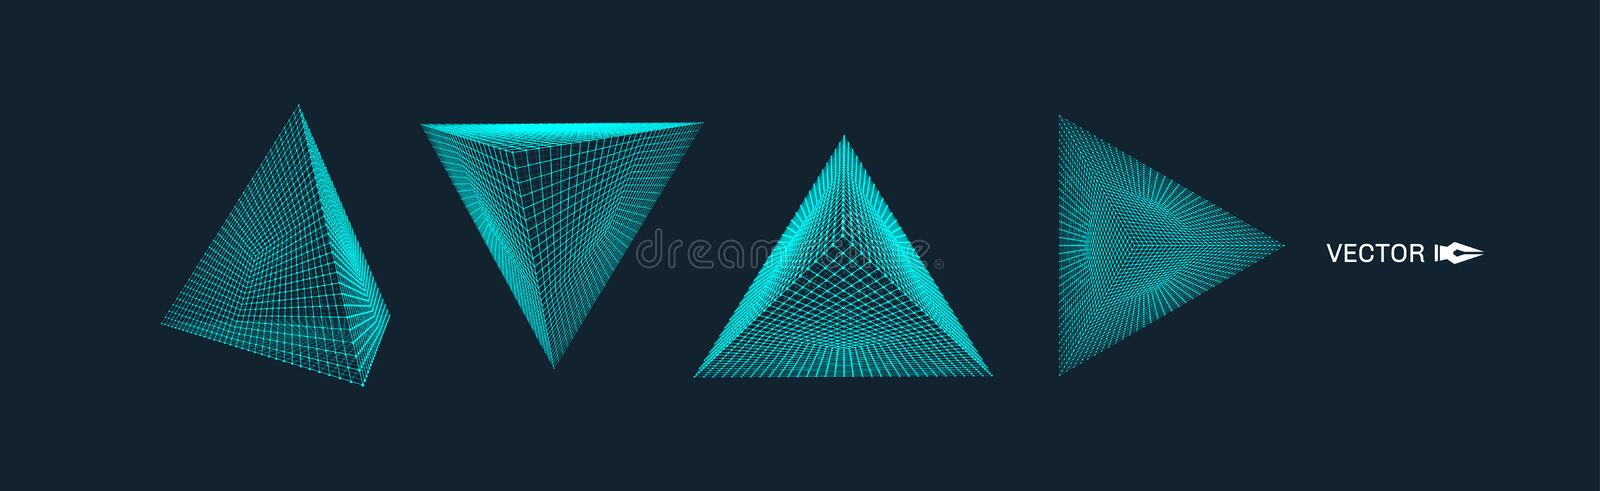 Pyramid. Molecular grid. 3d technology style. Vector illustration. Connection structure for chemistry and science. Pyramid. Molecular grid. 3d technology style vector illustration